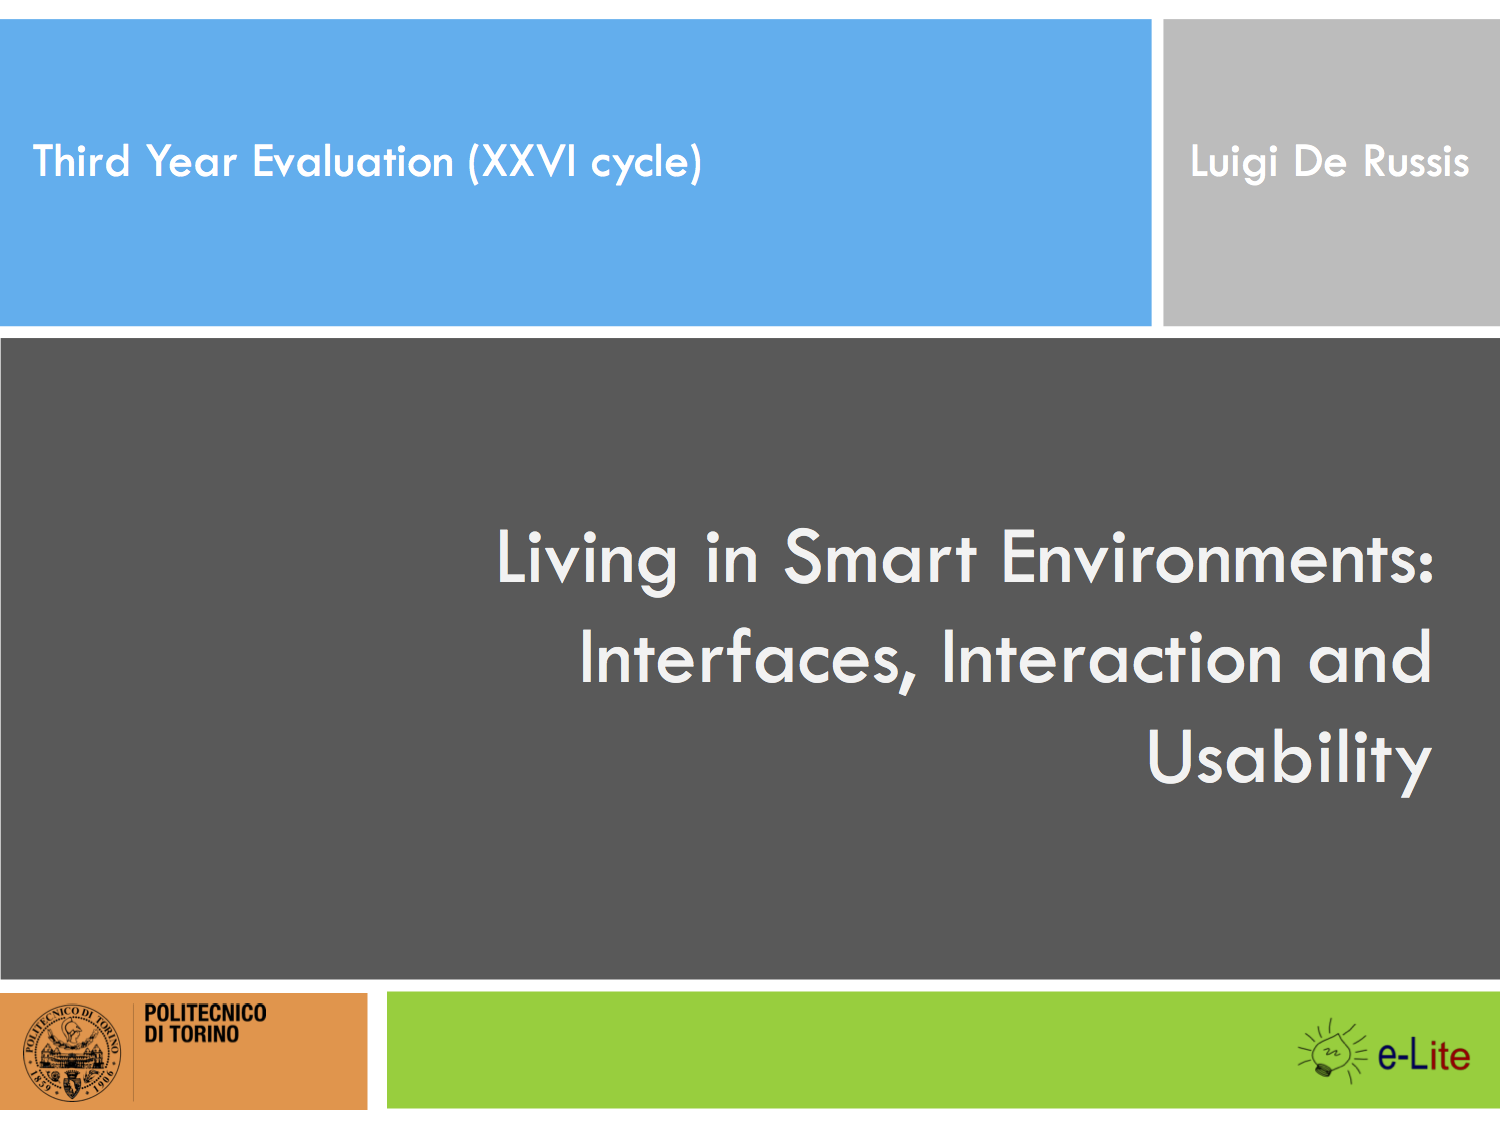 Interacting with Smart Environments